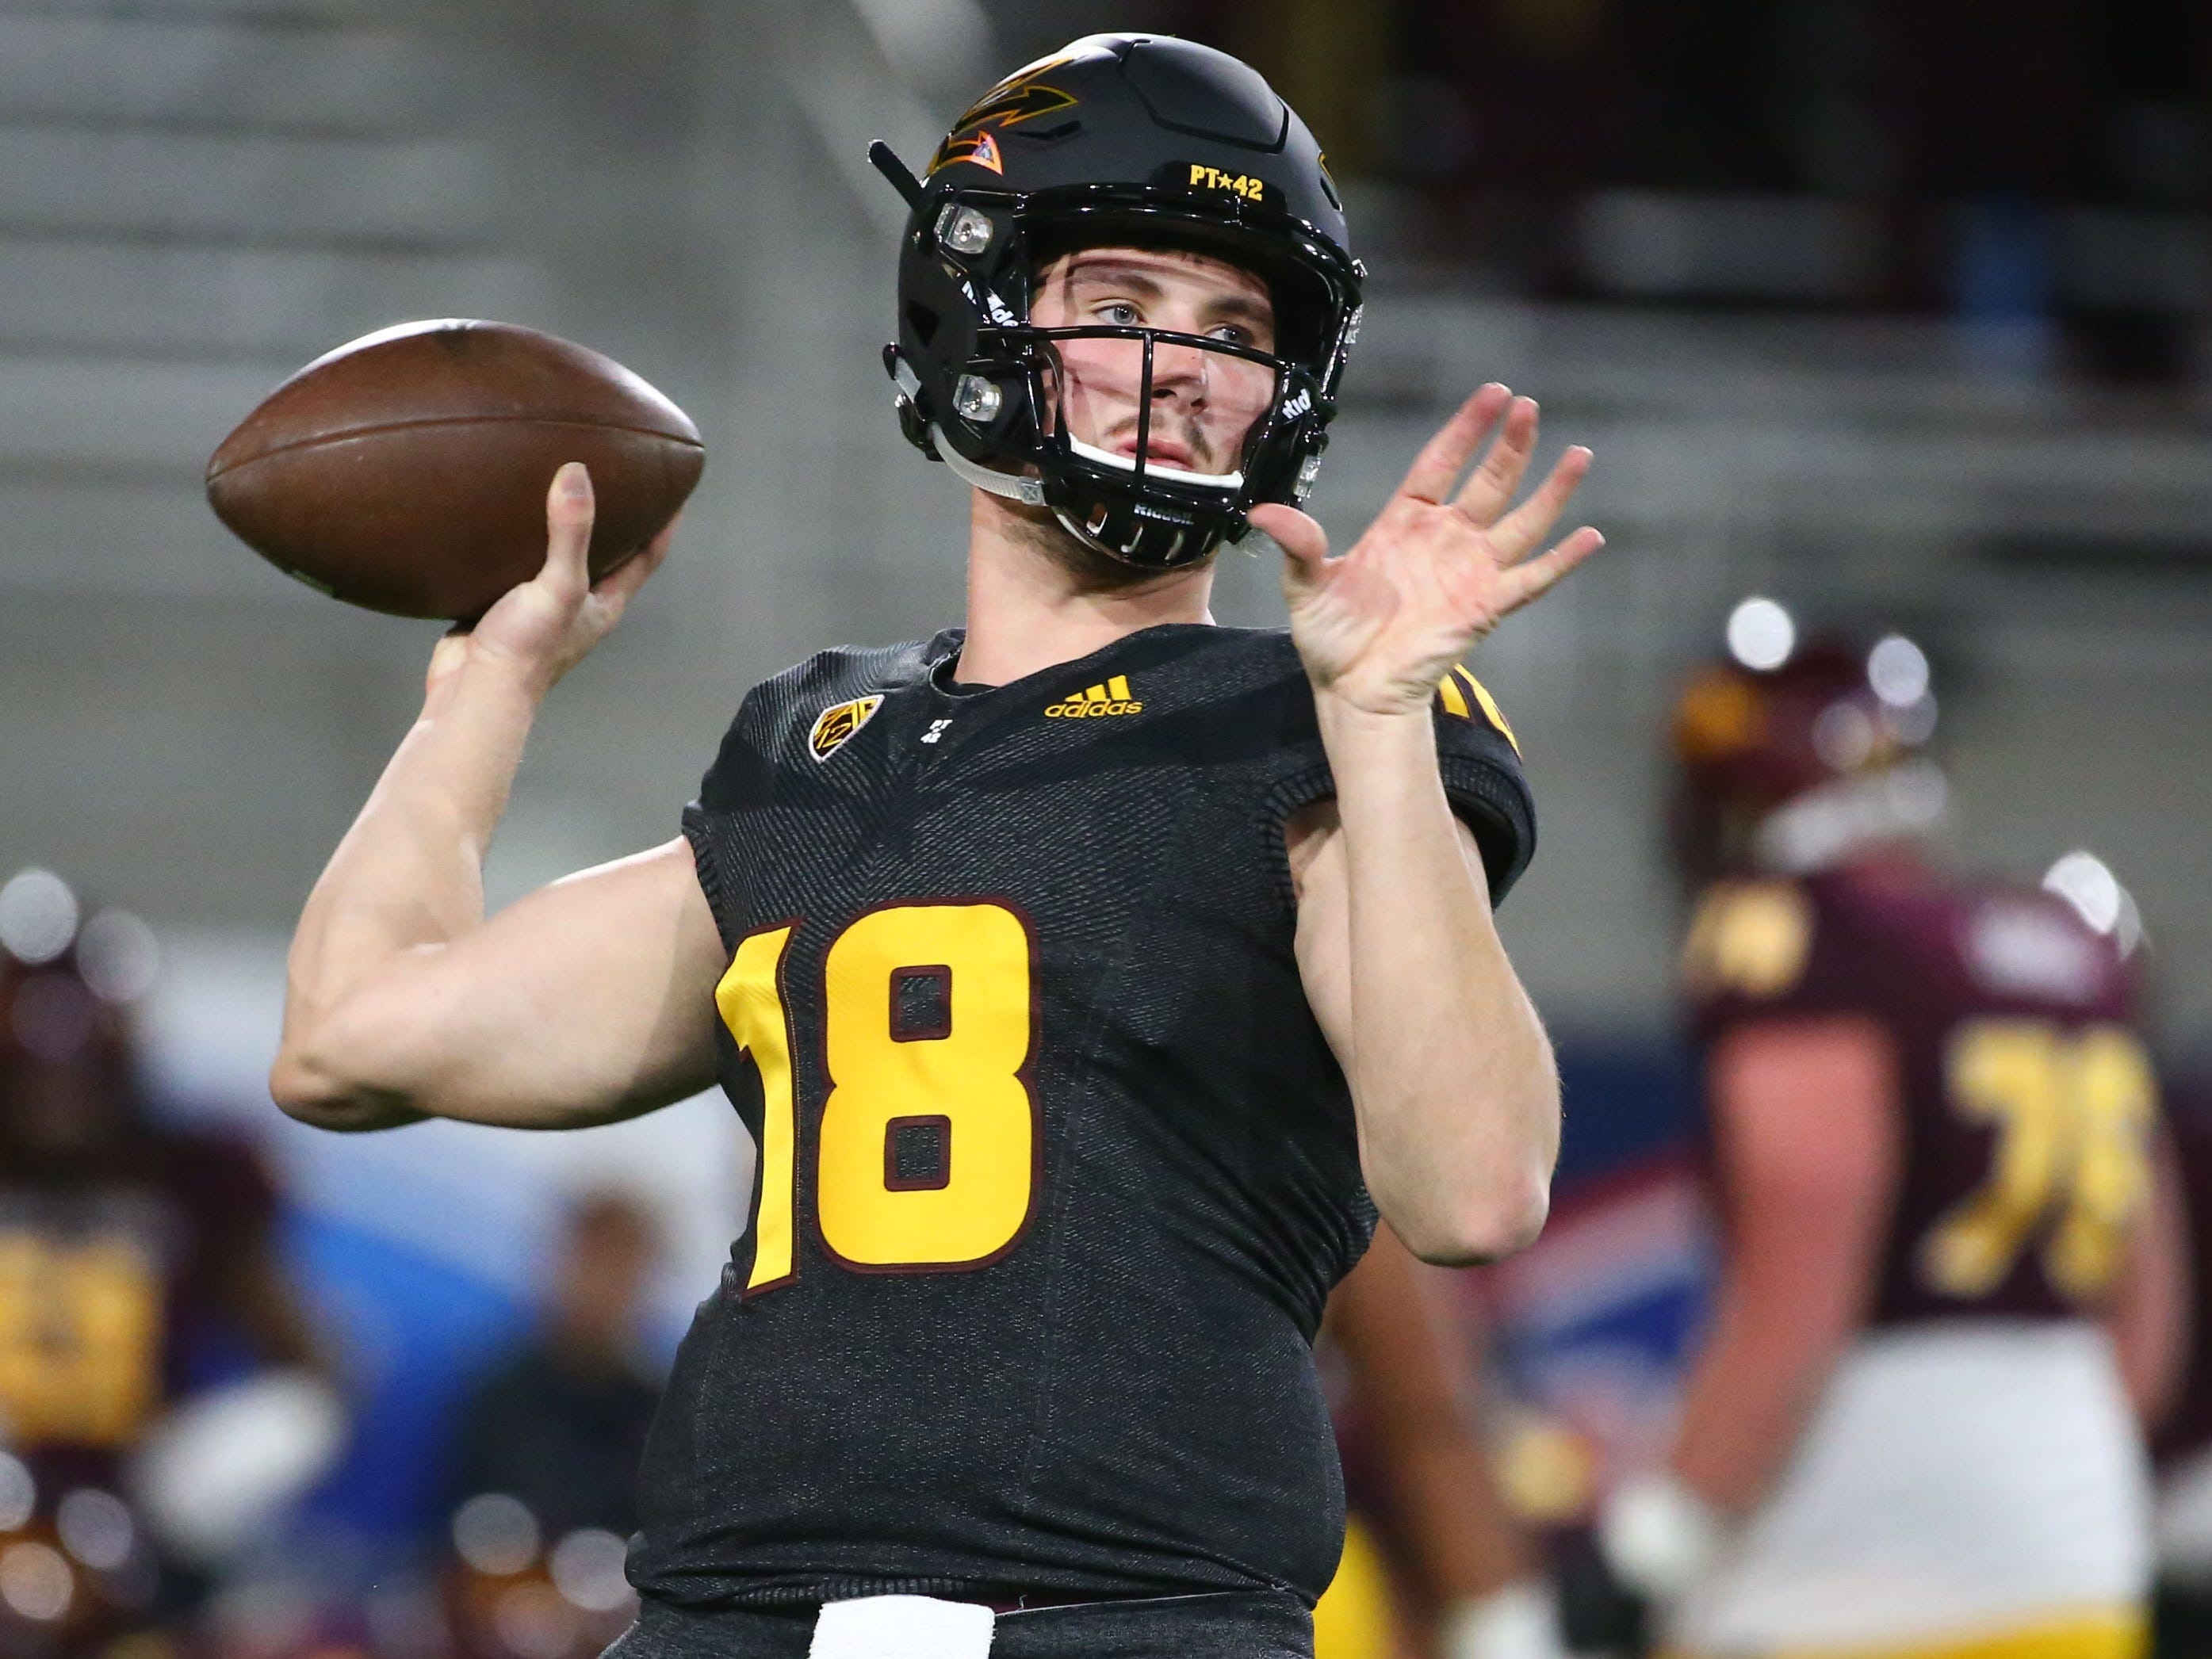 Arizona State quarterback Joey Yellen (18) during the spring practice game on Feb. 28, 2019 at Sun Devil Stadium in Tempe, Ariz.